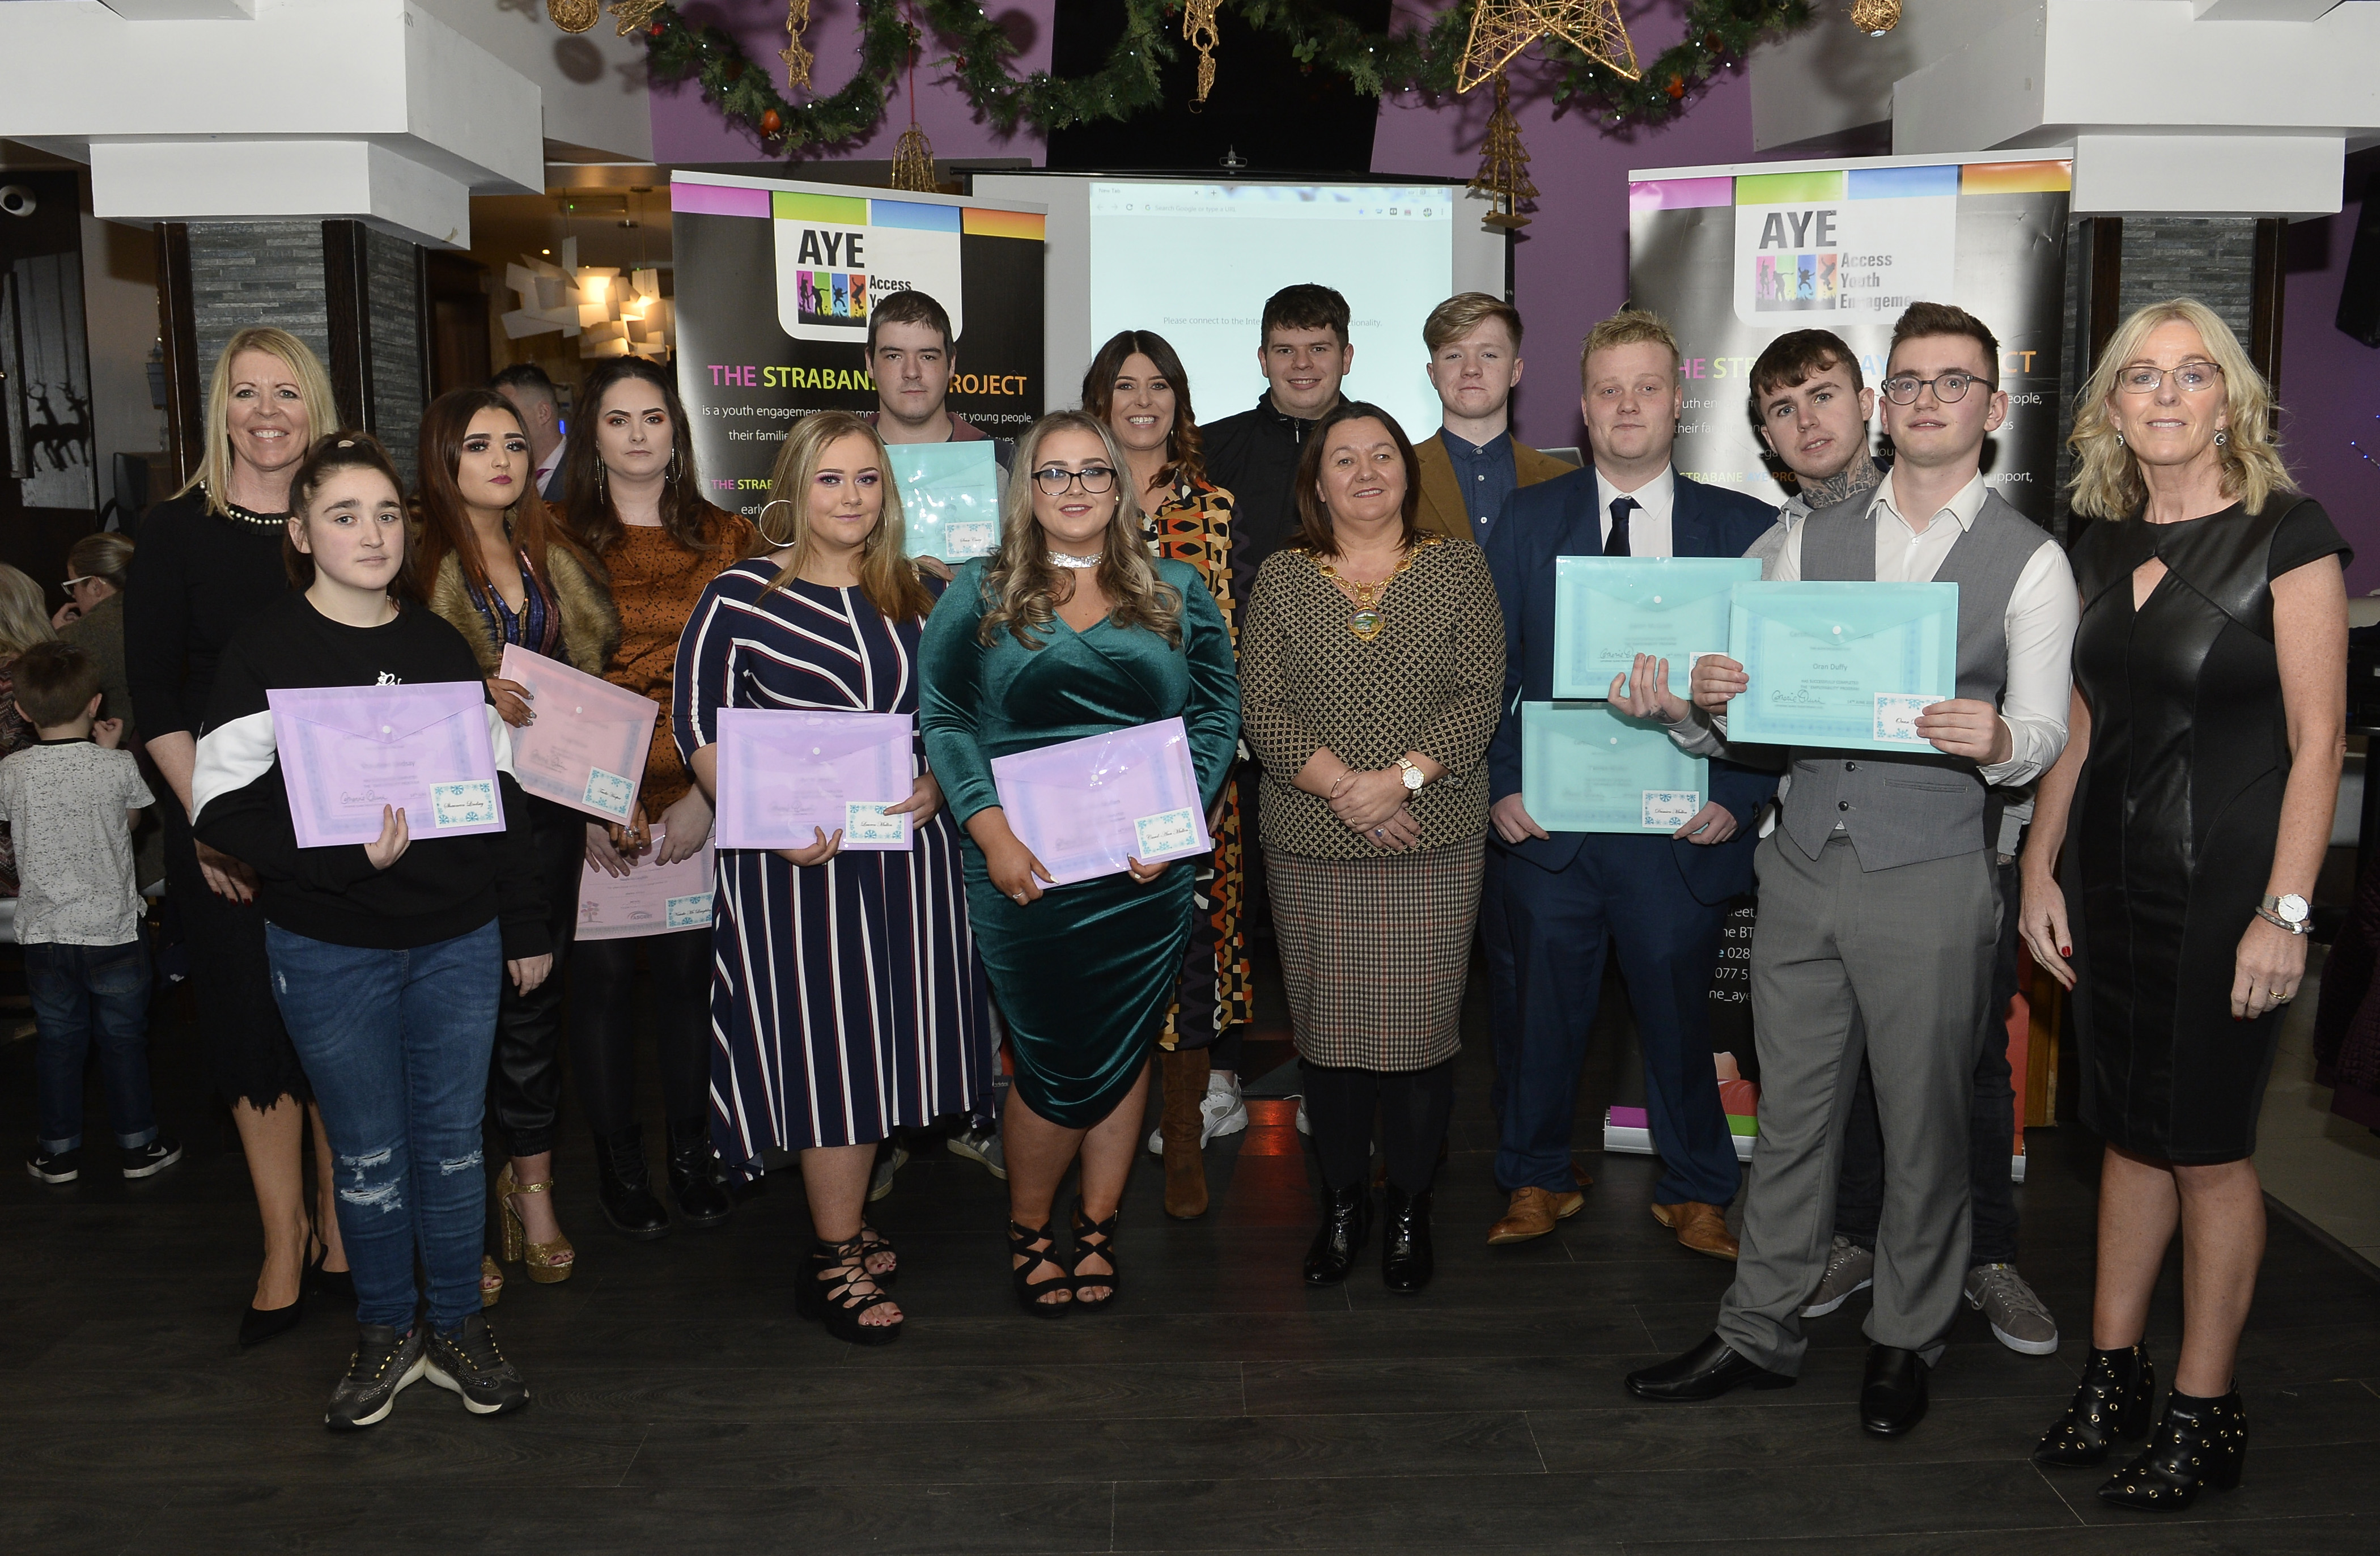 Strabane AYE marks another successful year for its young people